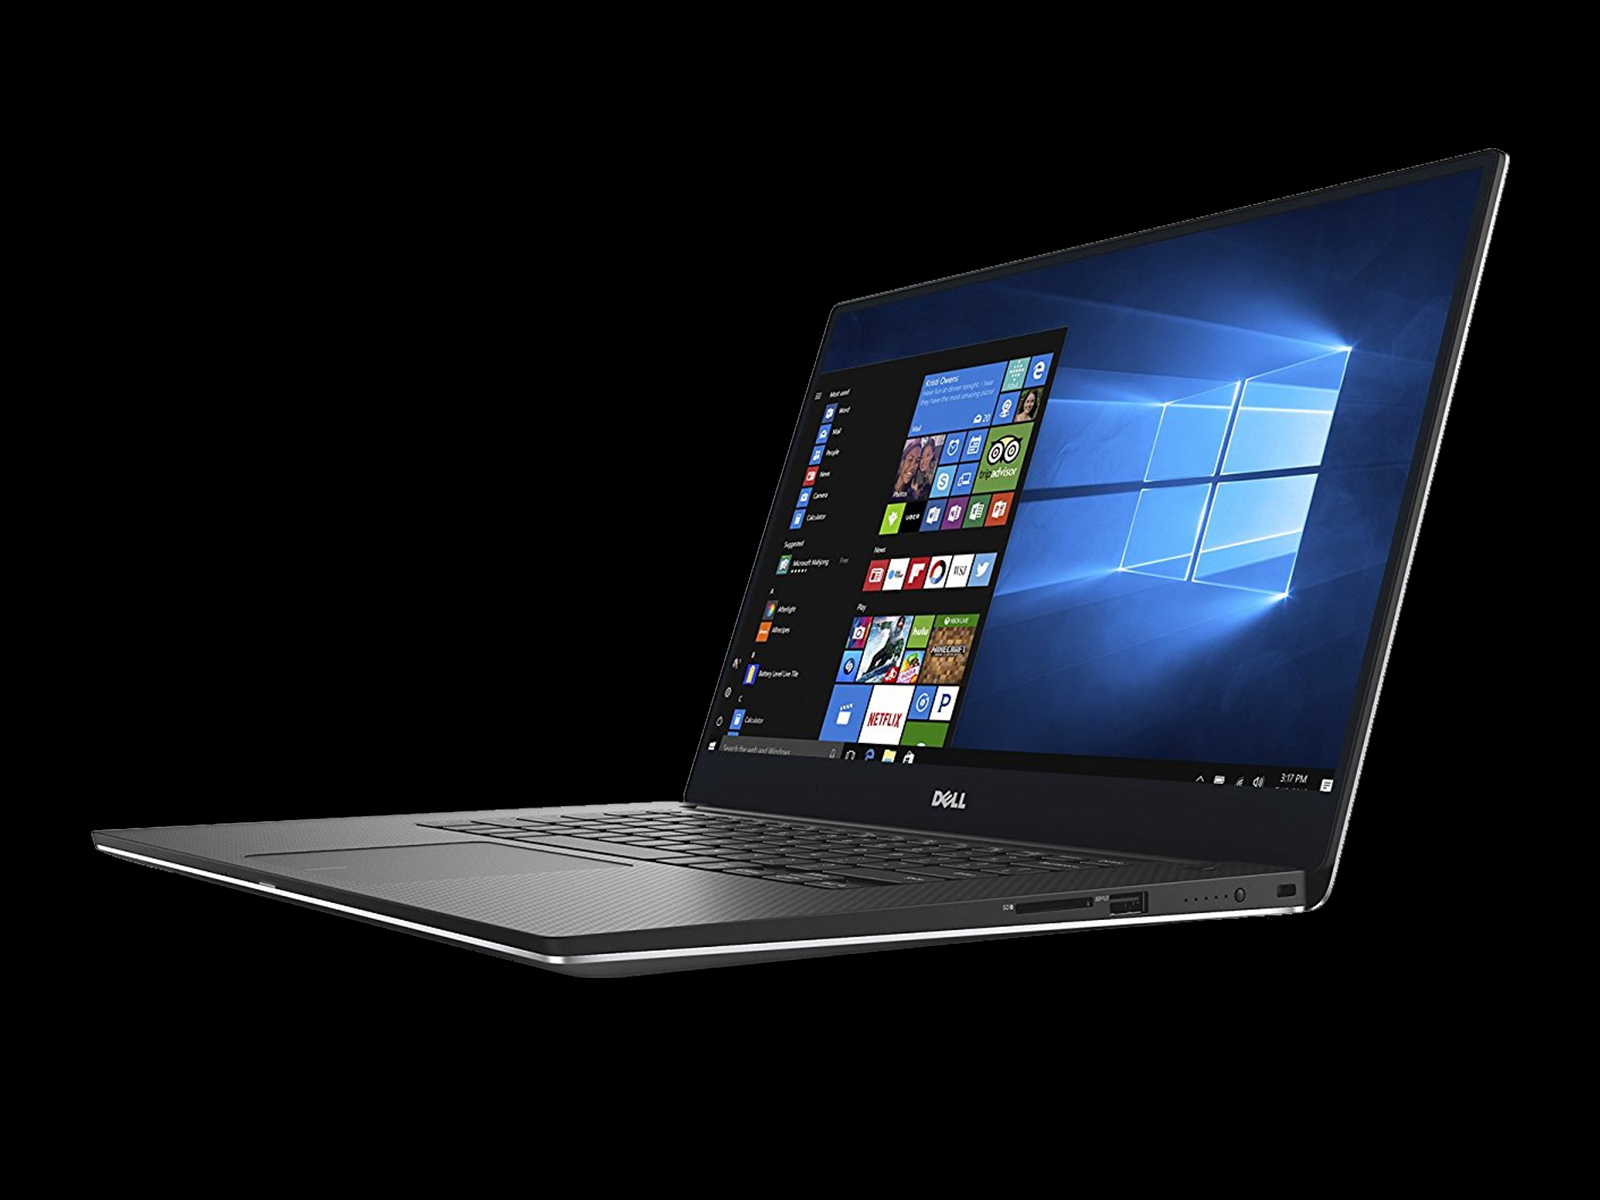 Dell XPS 15 9560 9560-9319